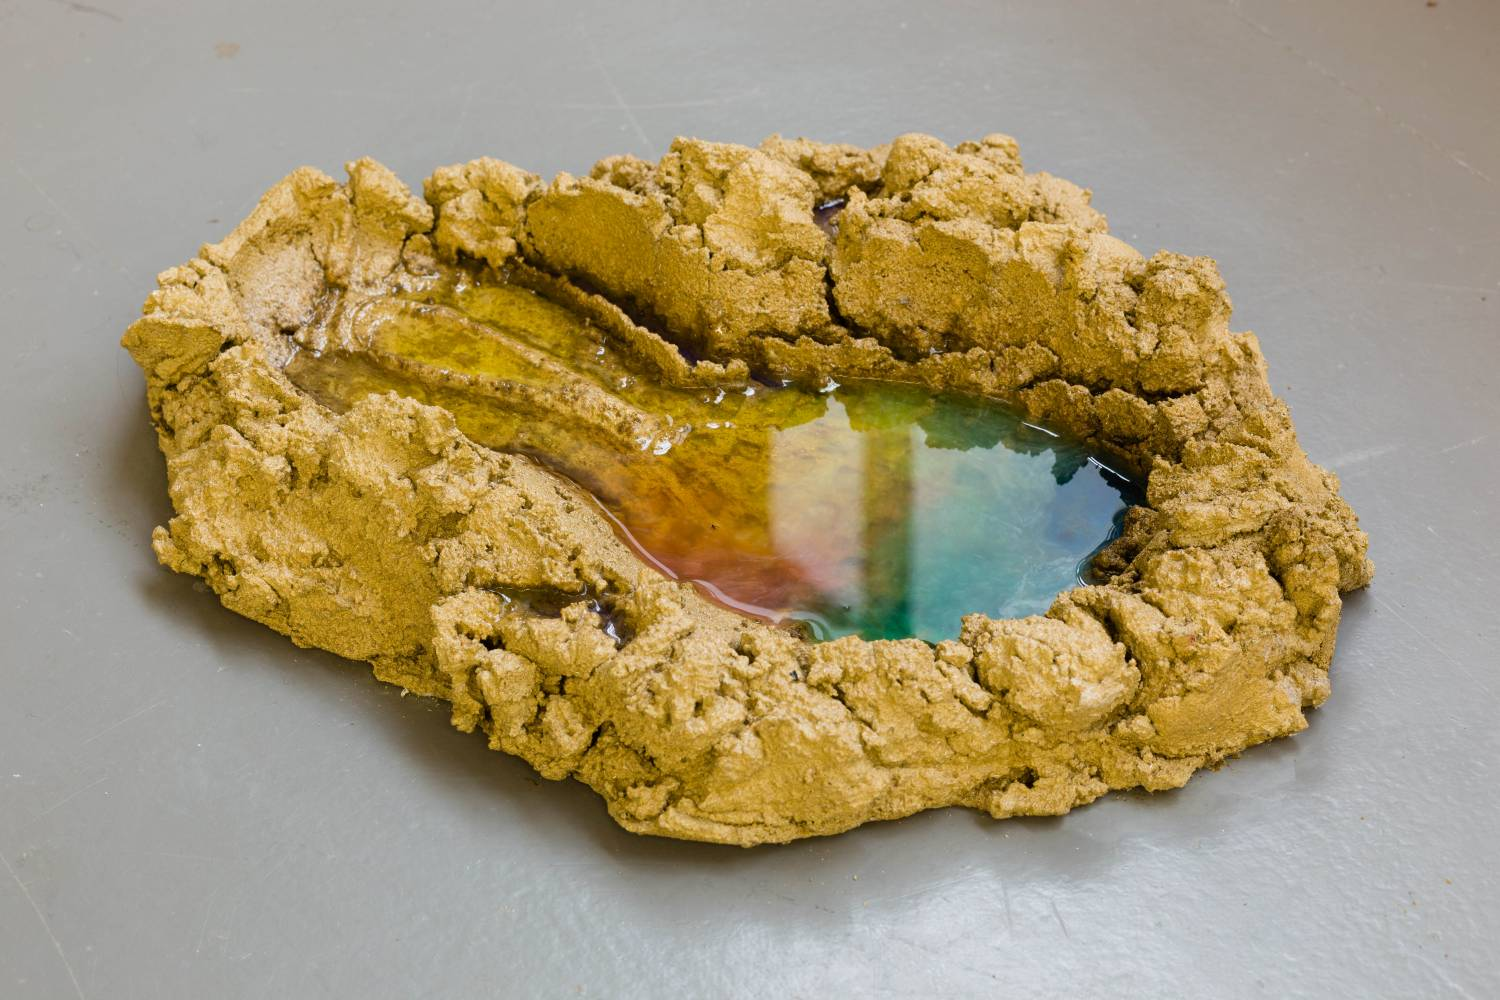 Samara Scott, Cough,2013, Dyed concrete, resin, shampoo - I Was Once Lonelyness, BlainSouthern